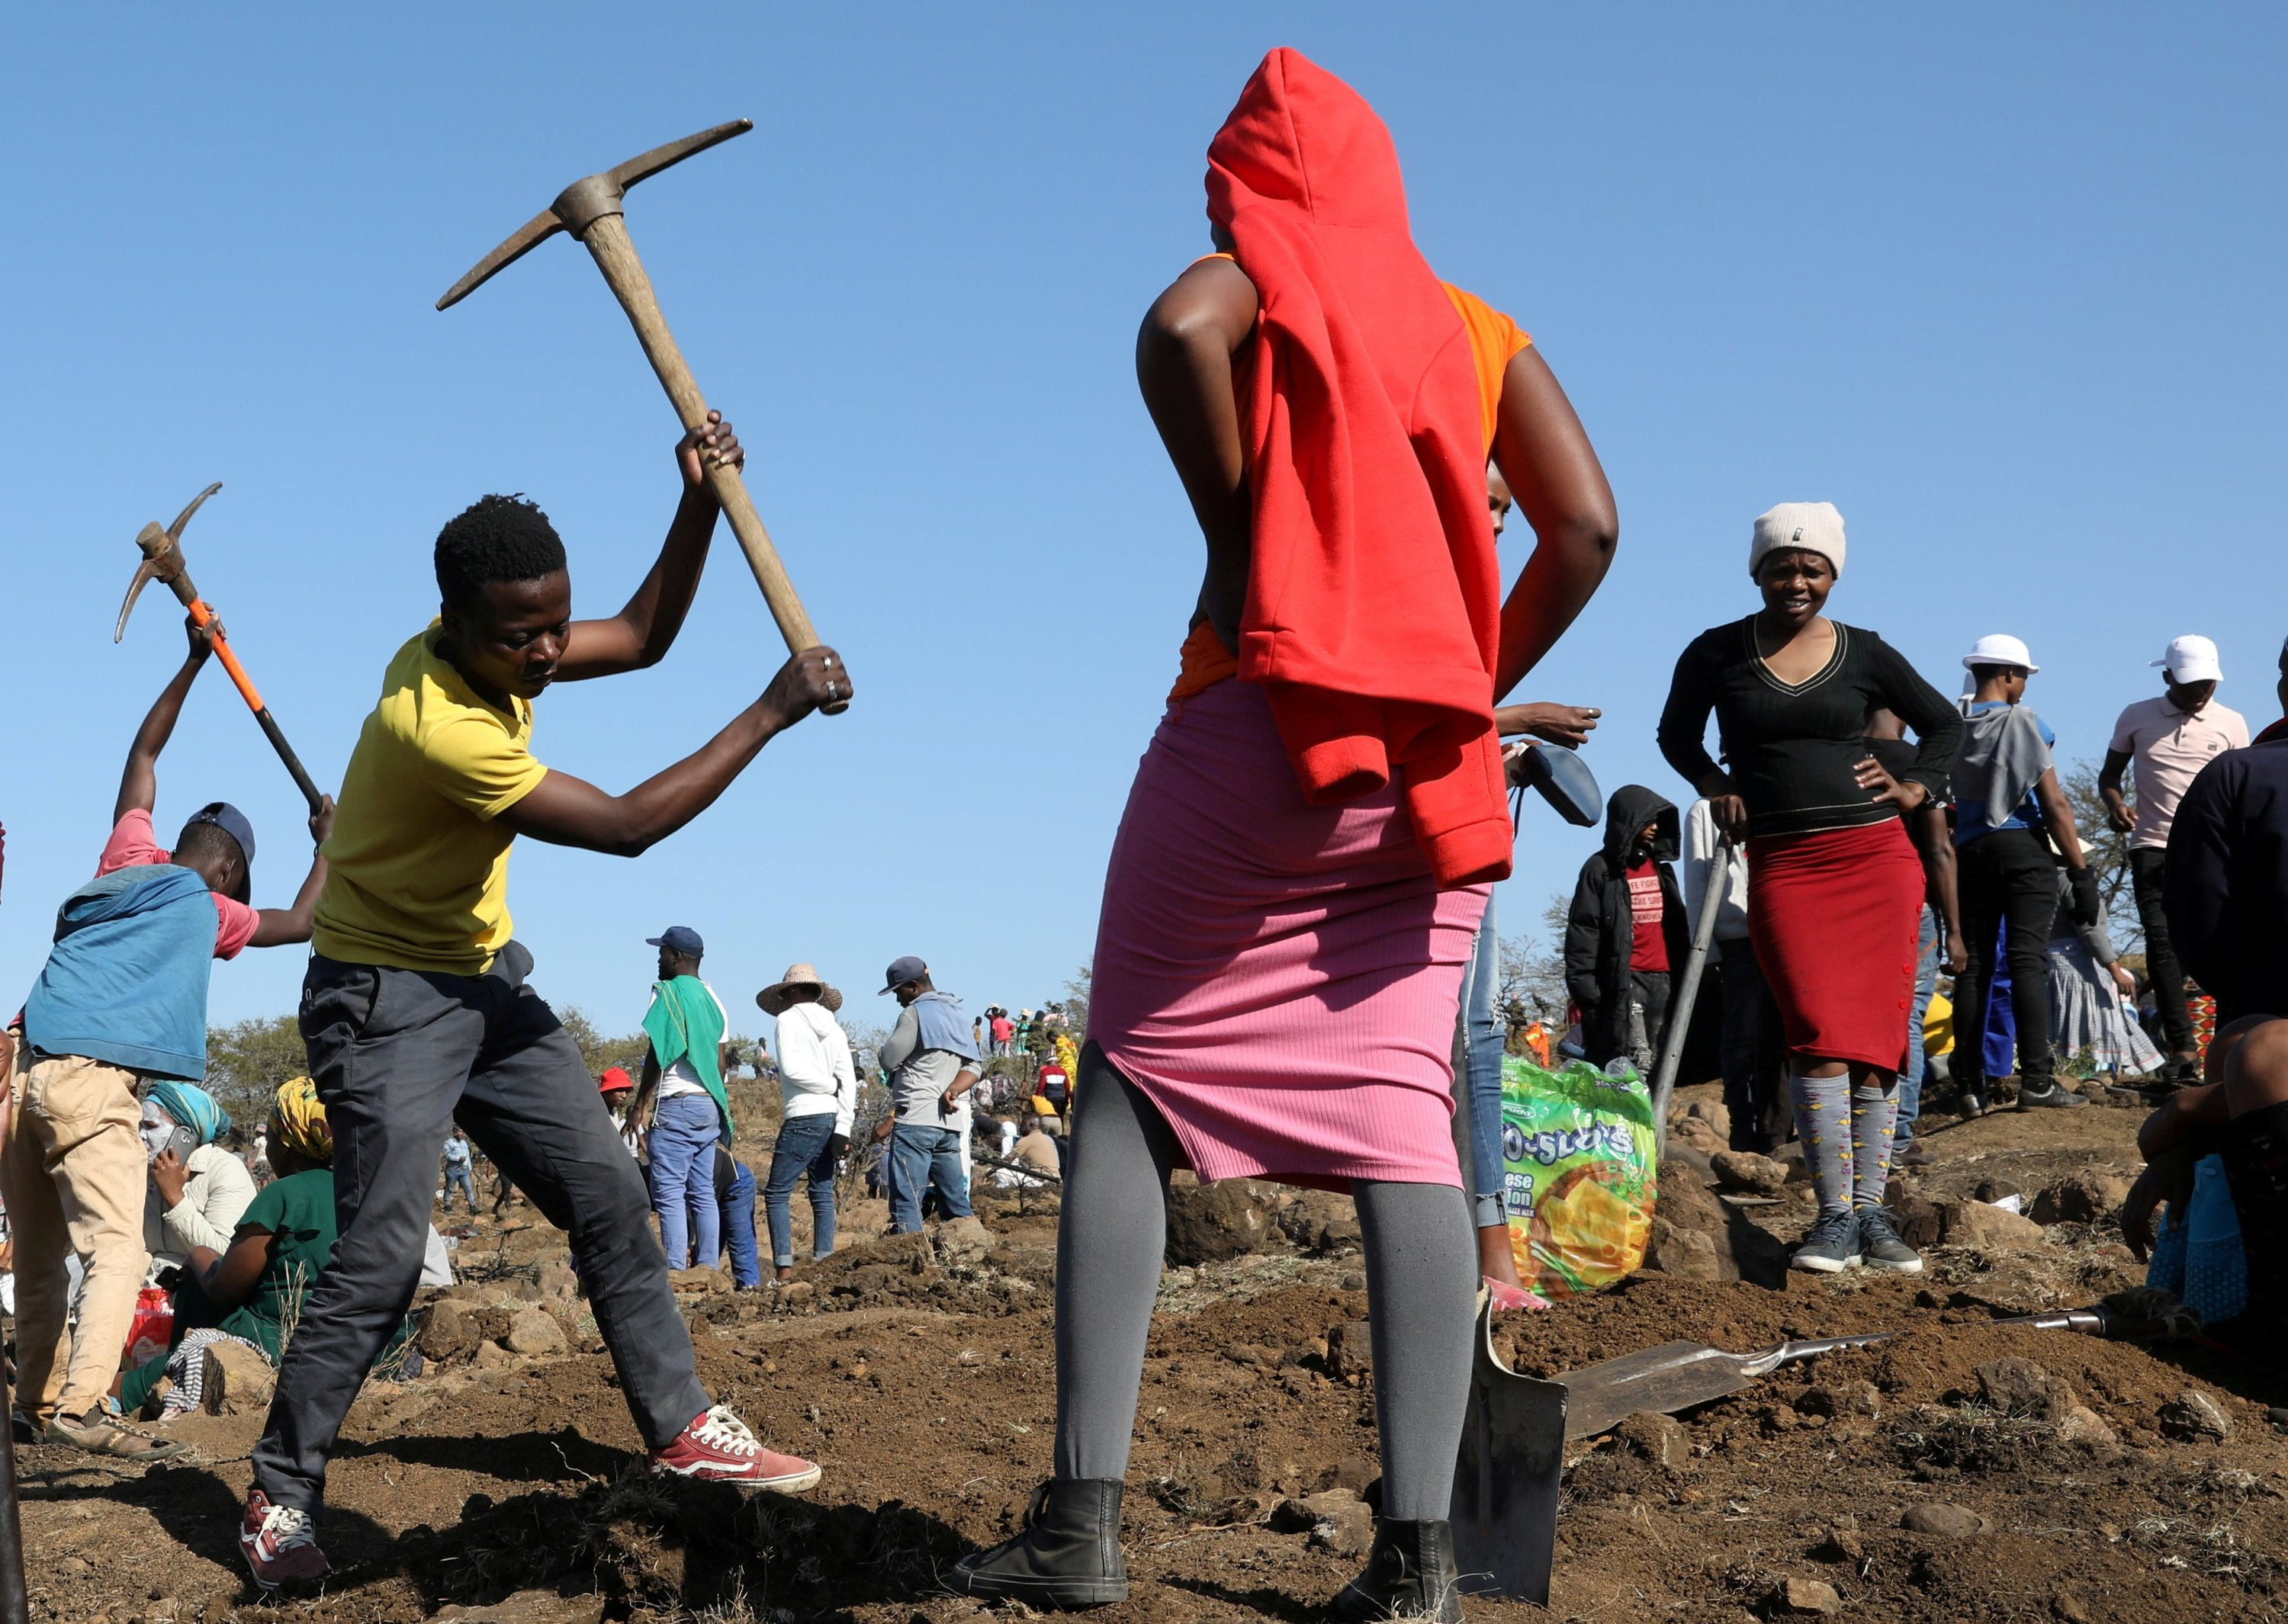 A person uses a pickaxe to dig as fortune seekers flock to KwaHlathi village near Ladysmith in KwaZulu Natal, South Africa, June 14, 2021. (Reuters Photo)